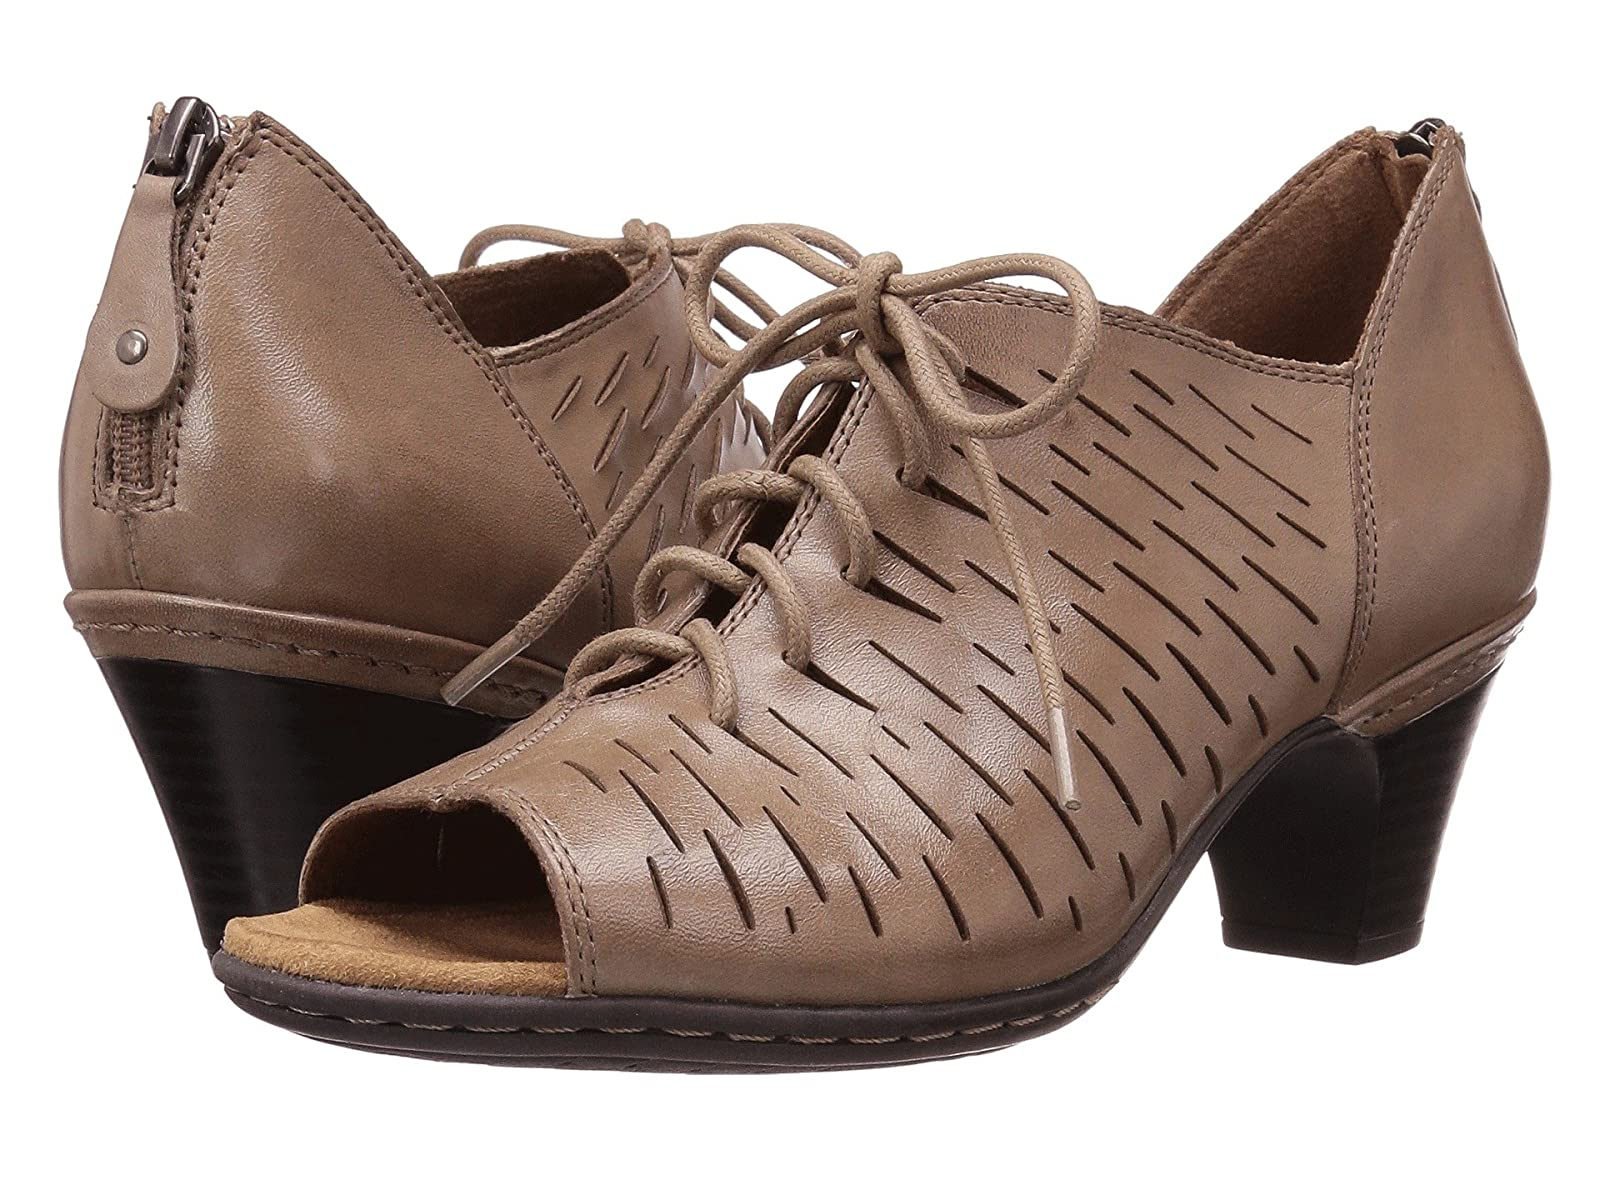 Rockport Cobb Hill Collection Cobb Hill Spencer Perforated Lace-UpCheap and distinctive eye-catching shoes